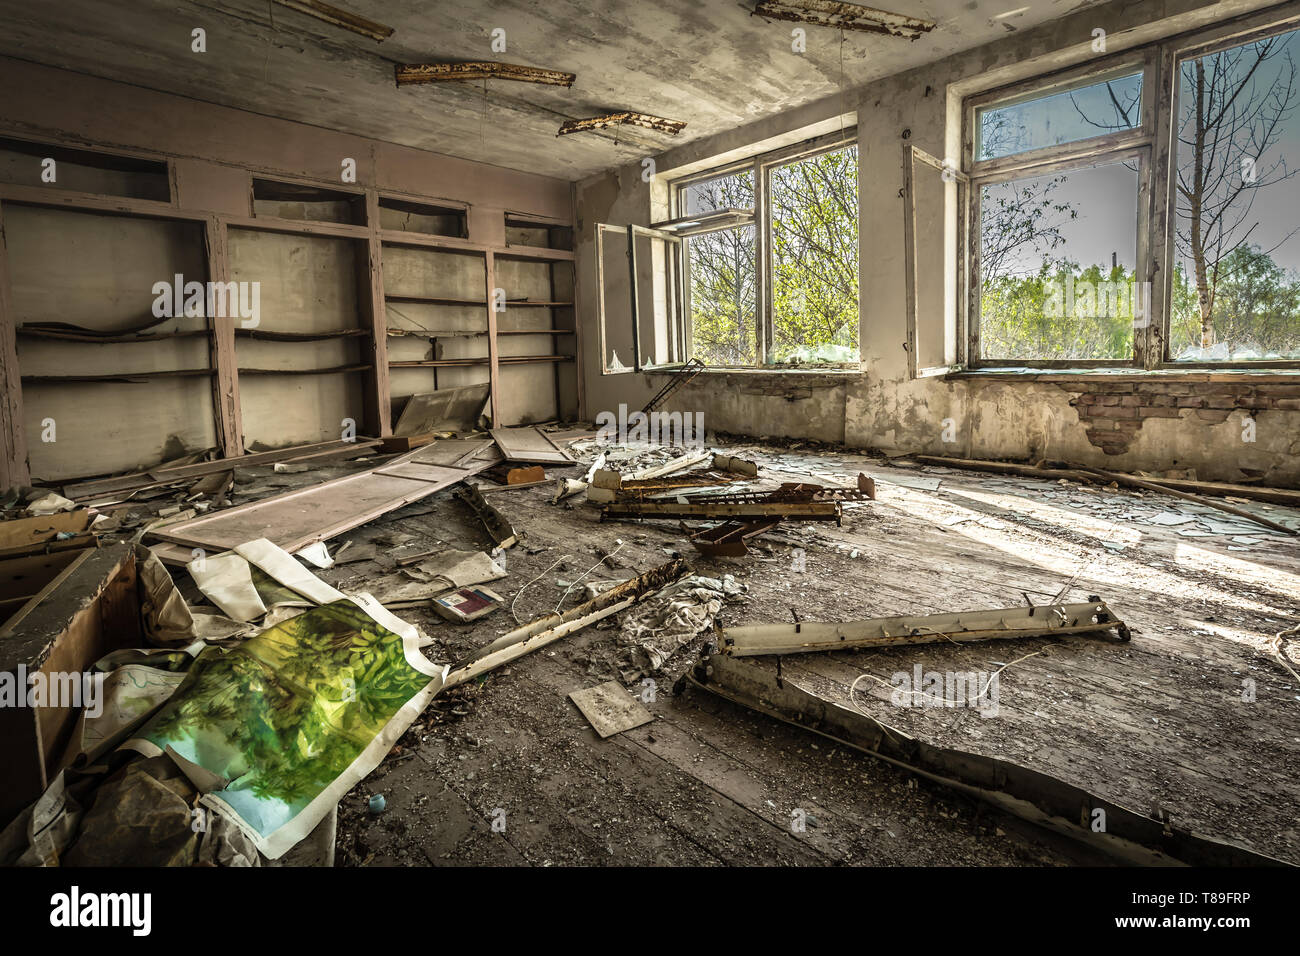 Class room in an abandoned school in Belarus Chernobyl exclusion zone, recently opened for the public from april 2019. - Stock Image